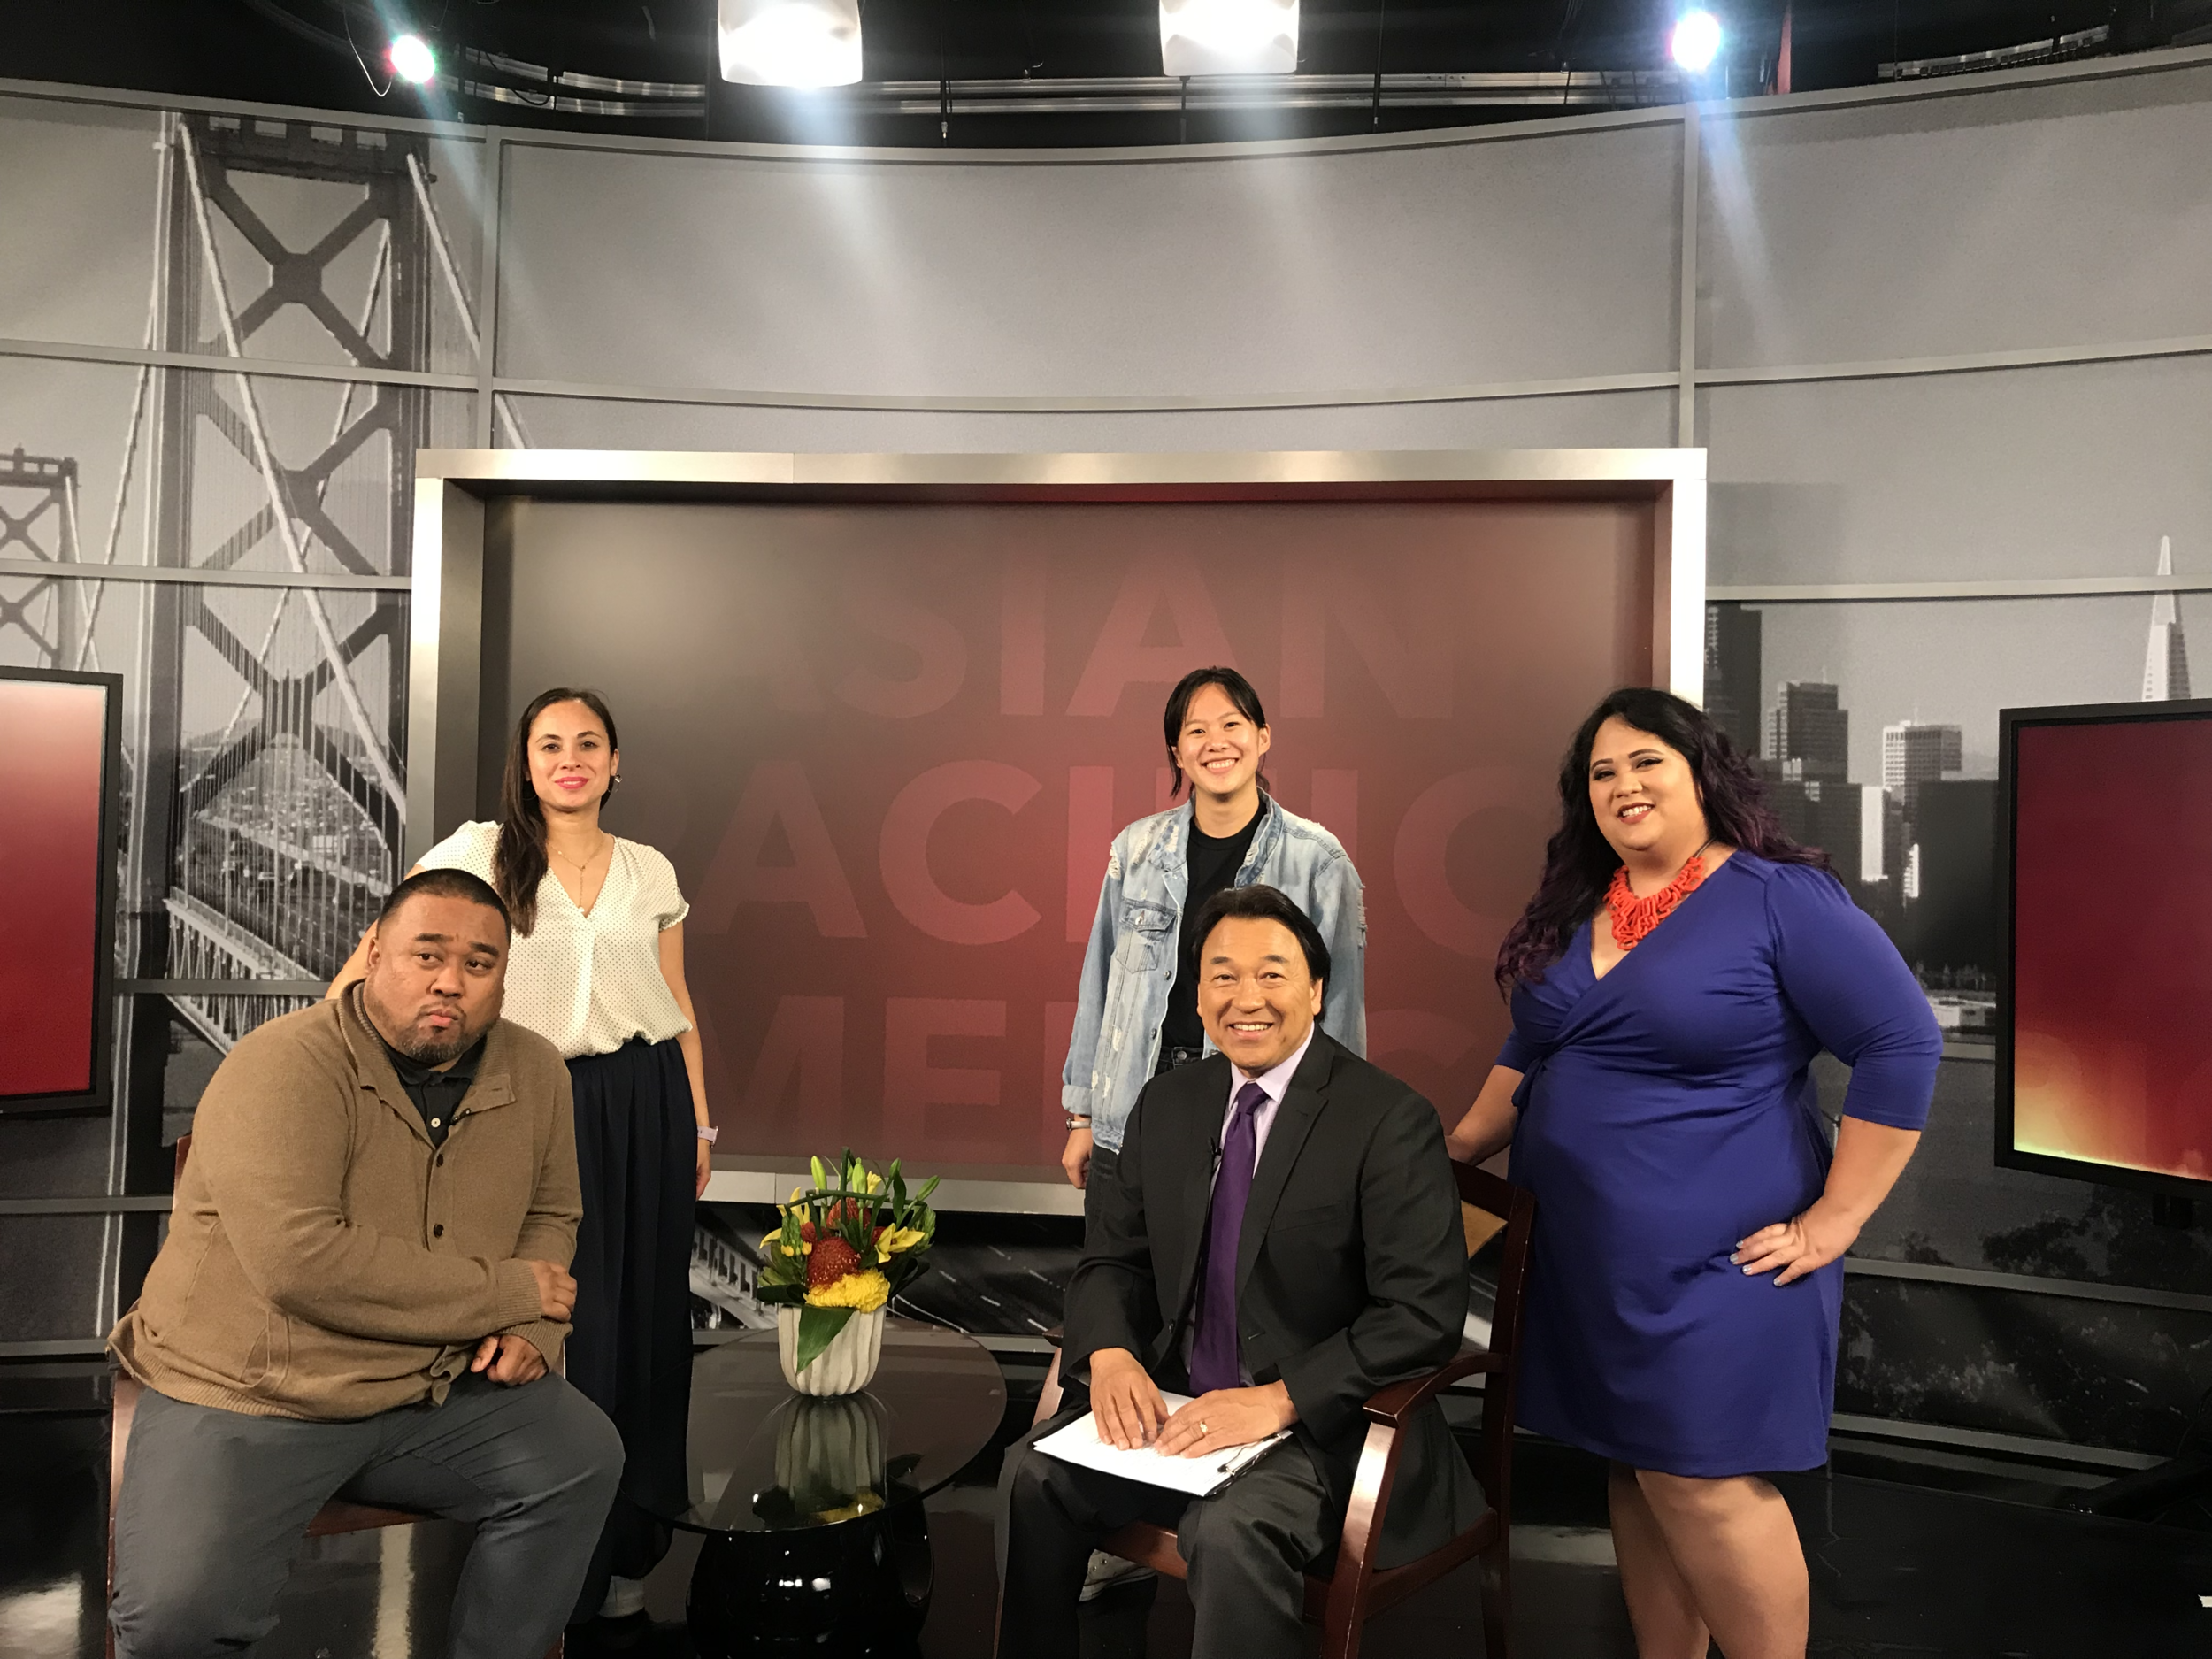 Jason Bayani (Poet, Kearny Street Workshop), Paloma Concordia (PapaLoDown Agency), Jenna Peng (PapaLoDown x APICC PR Intern), Robert Handa (Host, NBC News), and Melanie Elvena (API Cultural Center), on the set of NBC Bay Area for a tv interview on the program, 'Asian Pacific America'.